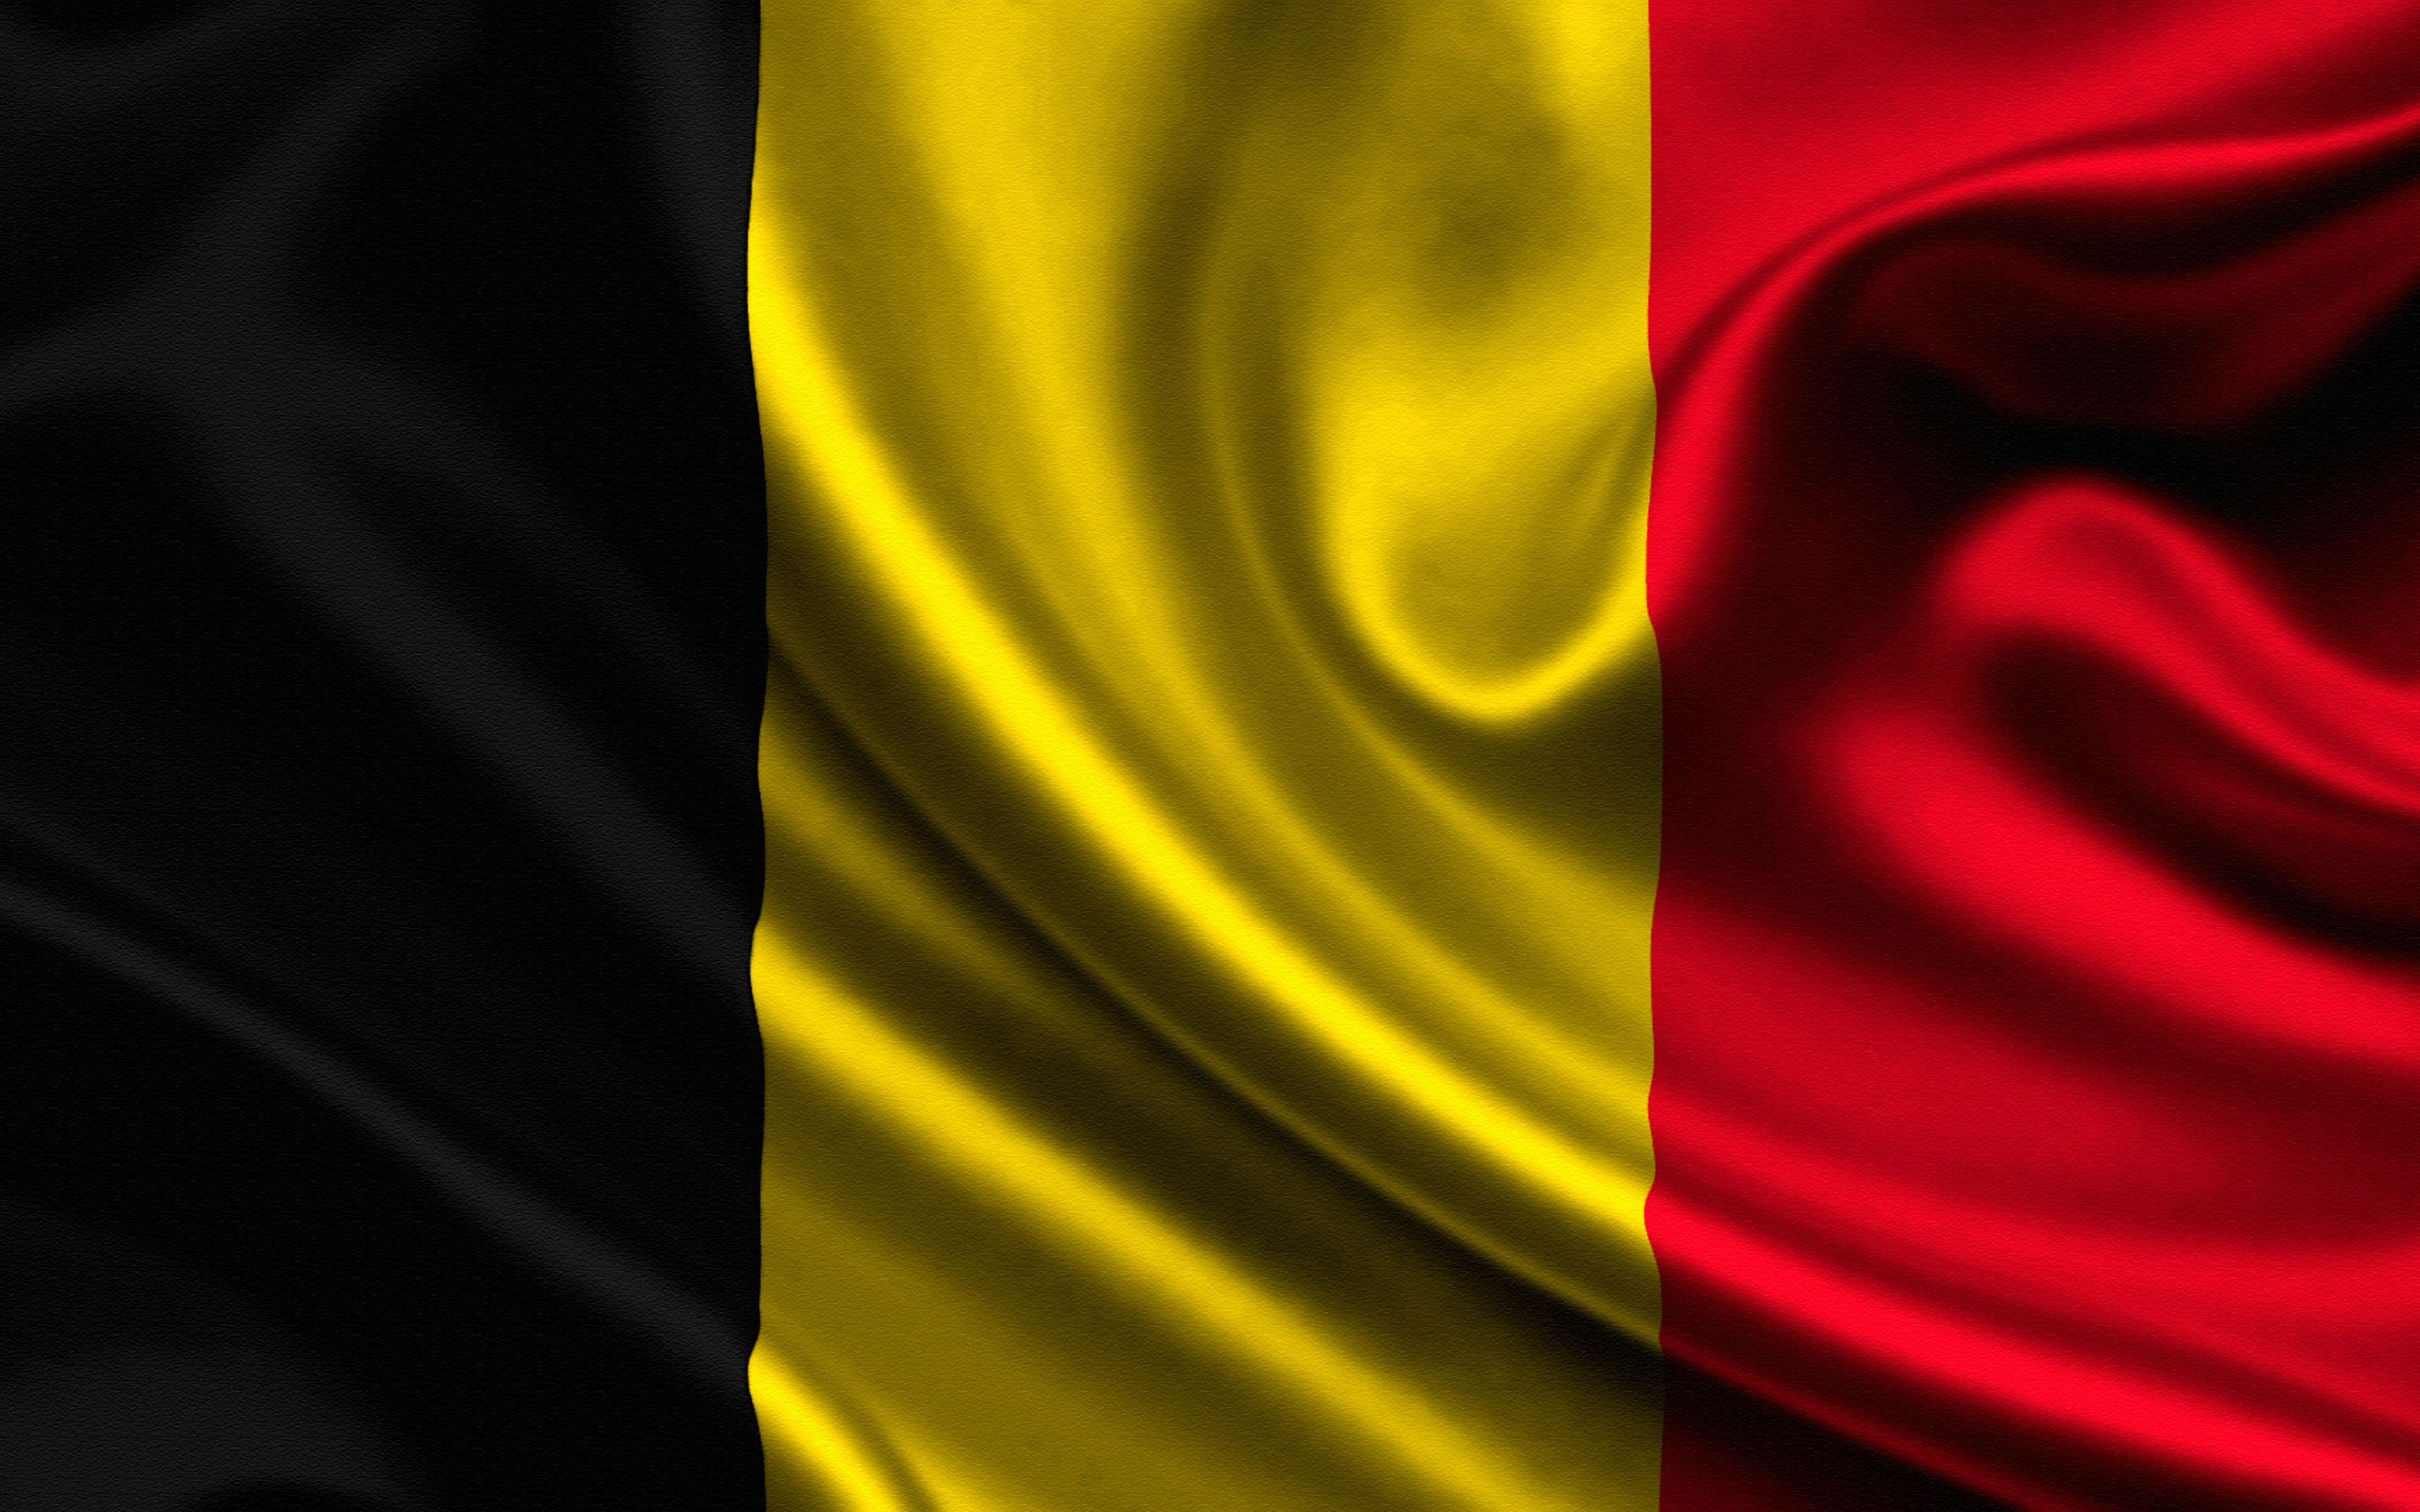 Flag Of Belgium Backgrounds, Compatible - PC, Mobile, Gadgets| 2560x1600 px